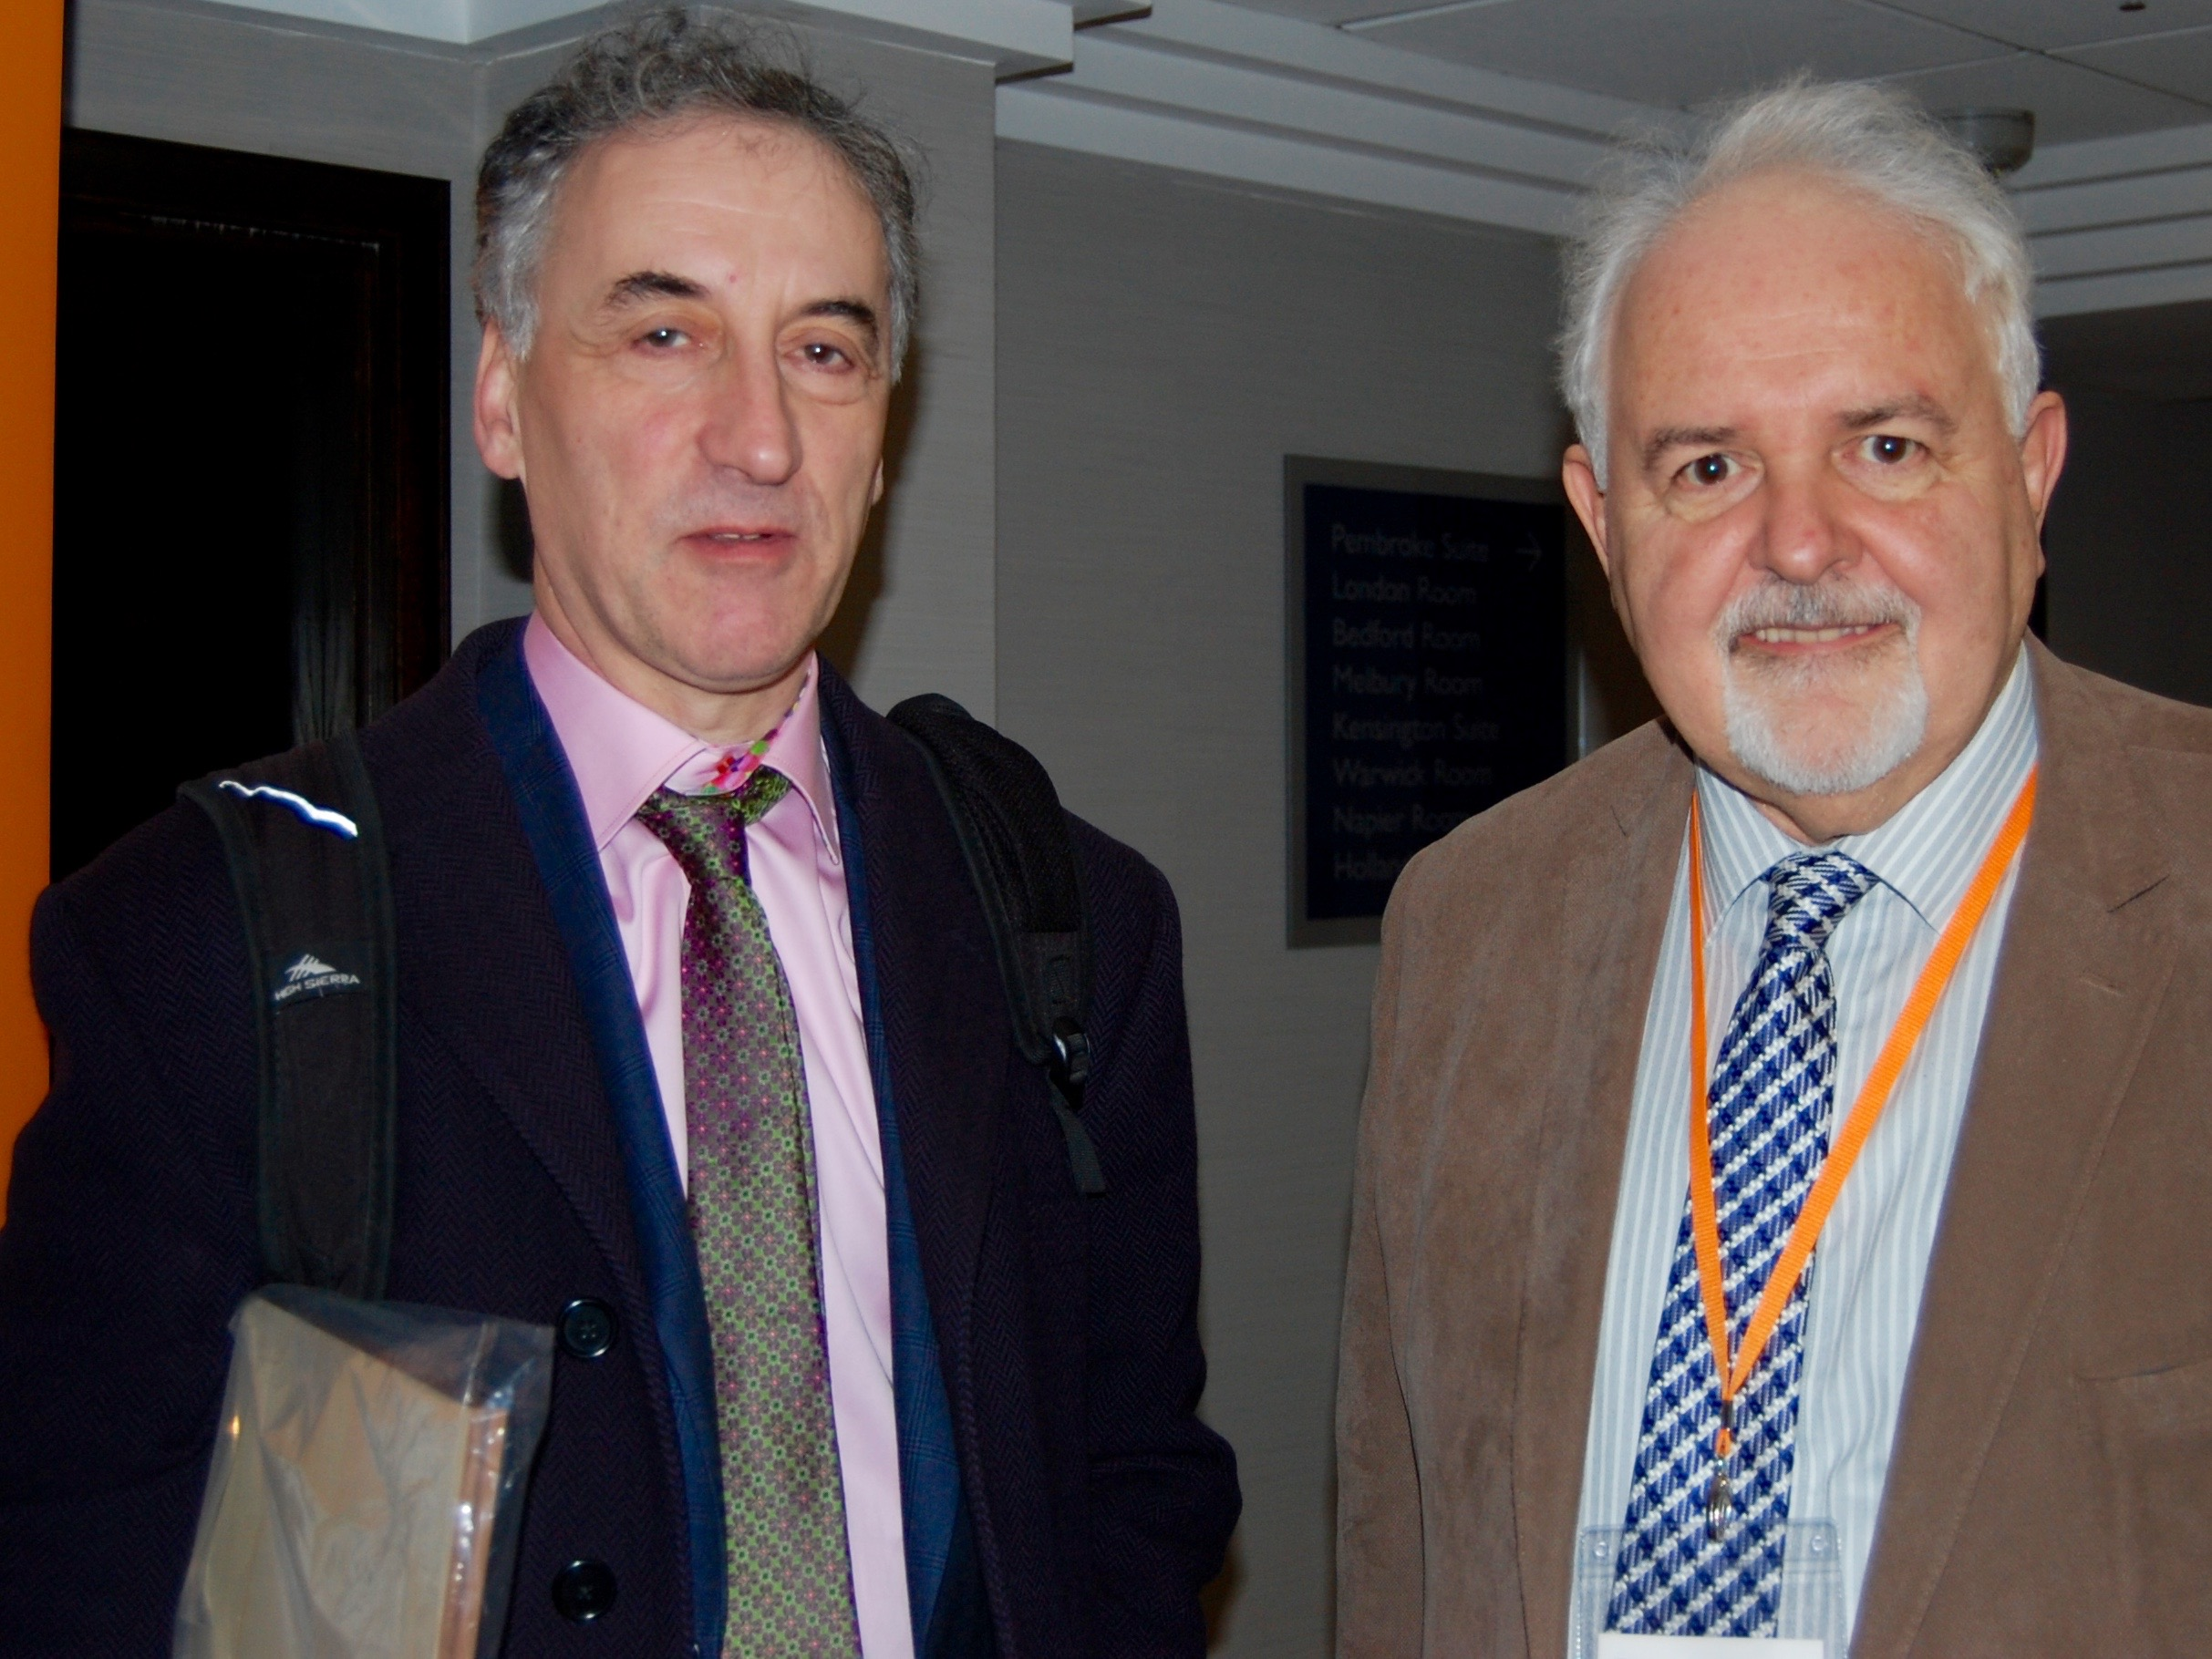 Malcolm Pein and John Foley at the London Chess Conference